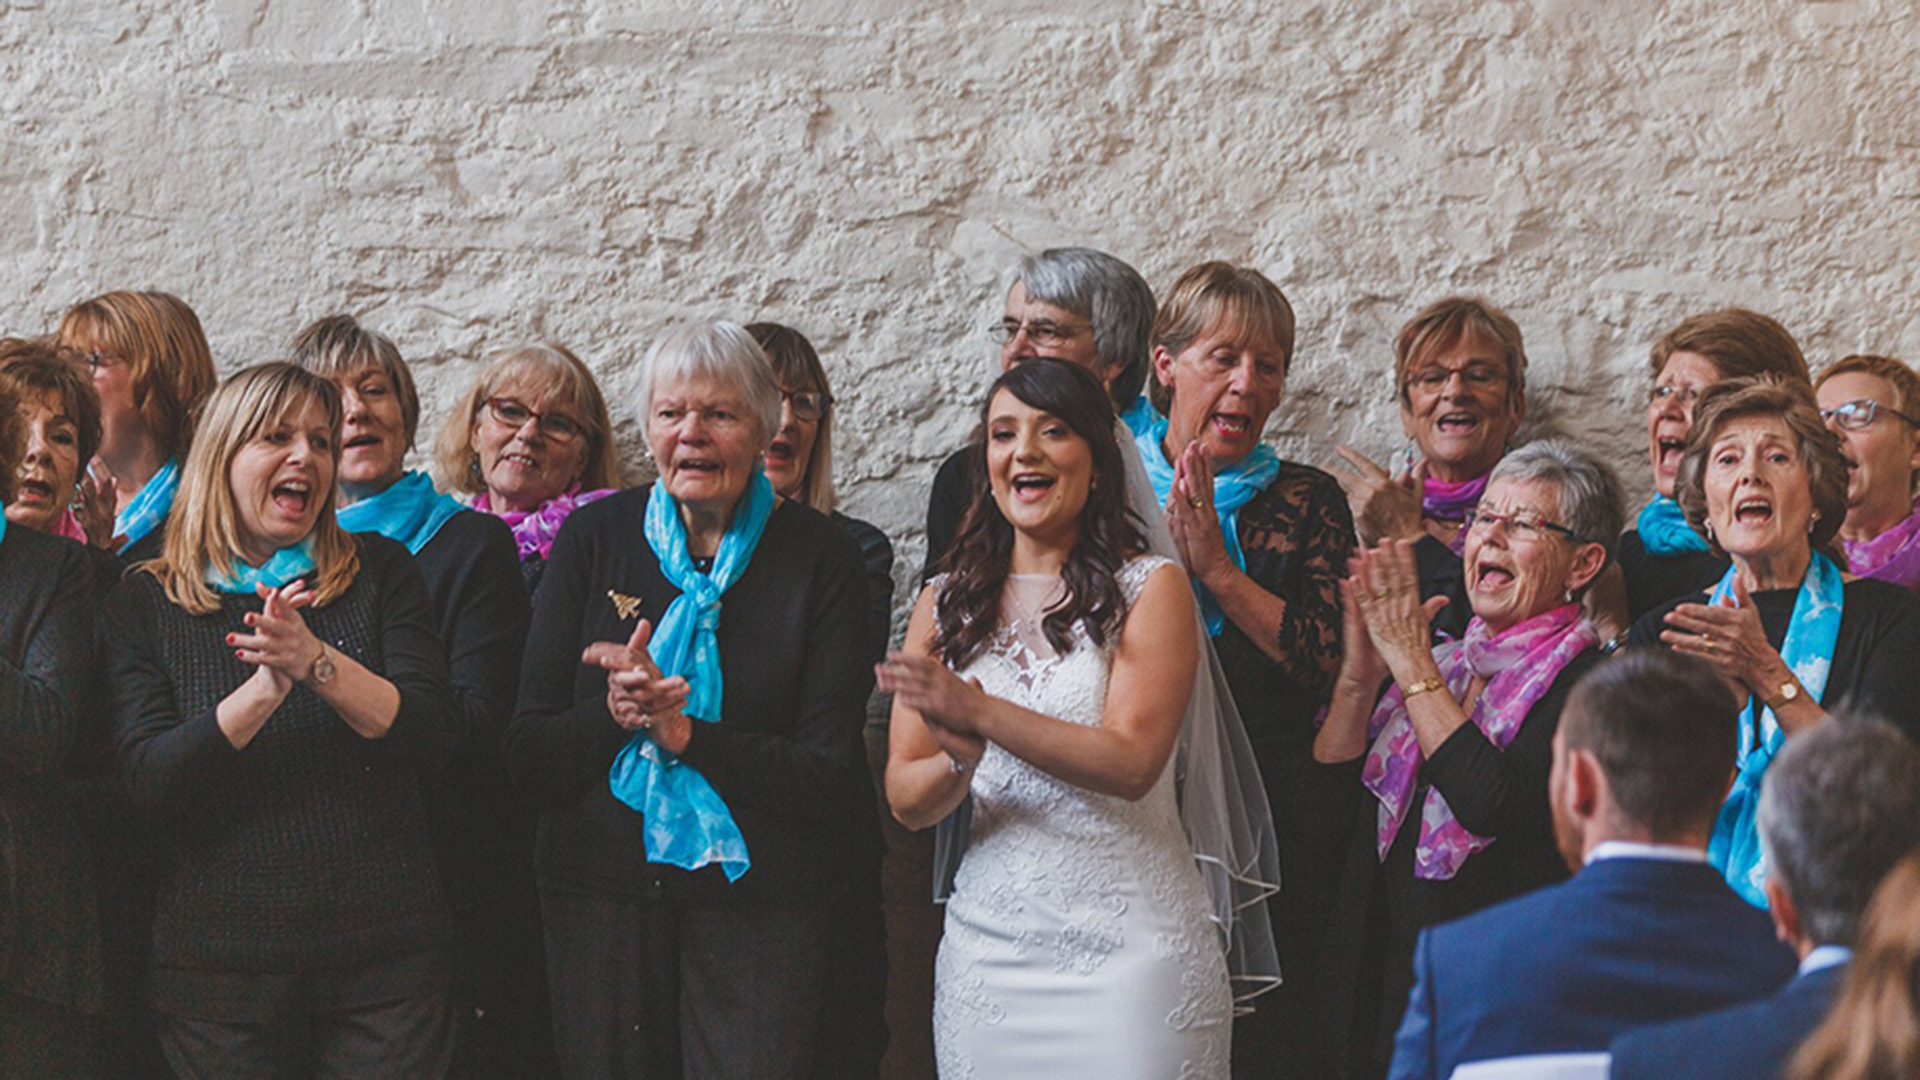 Rachel's story - Hospiscare sang at my wedding